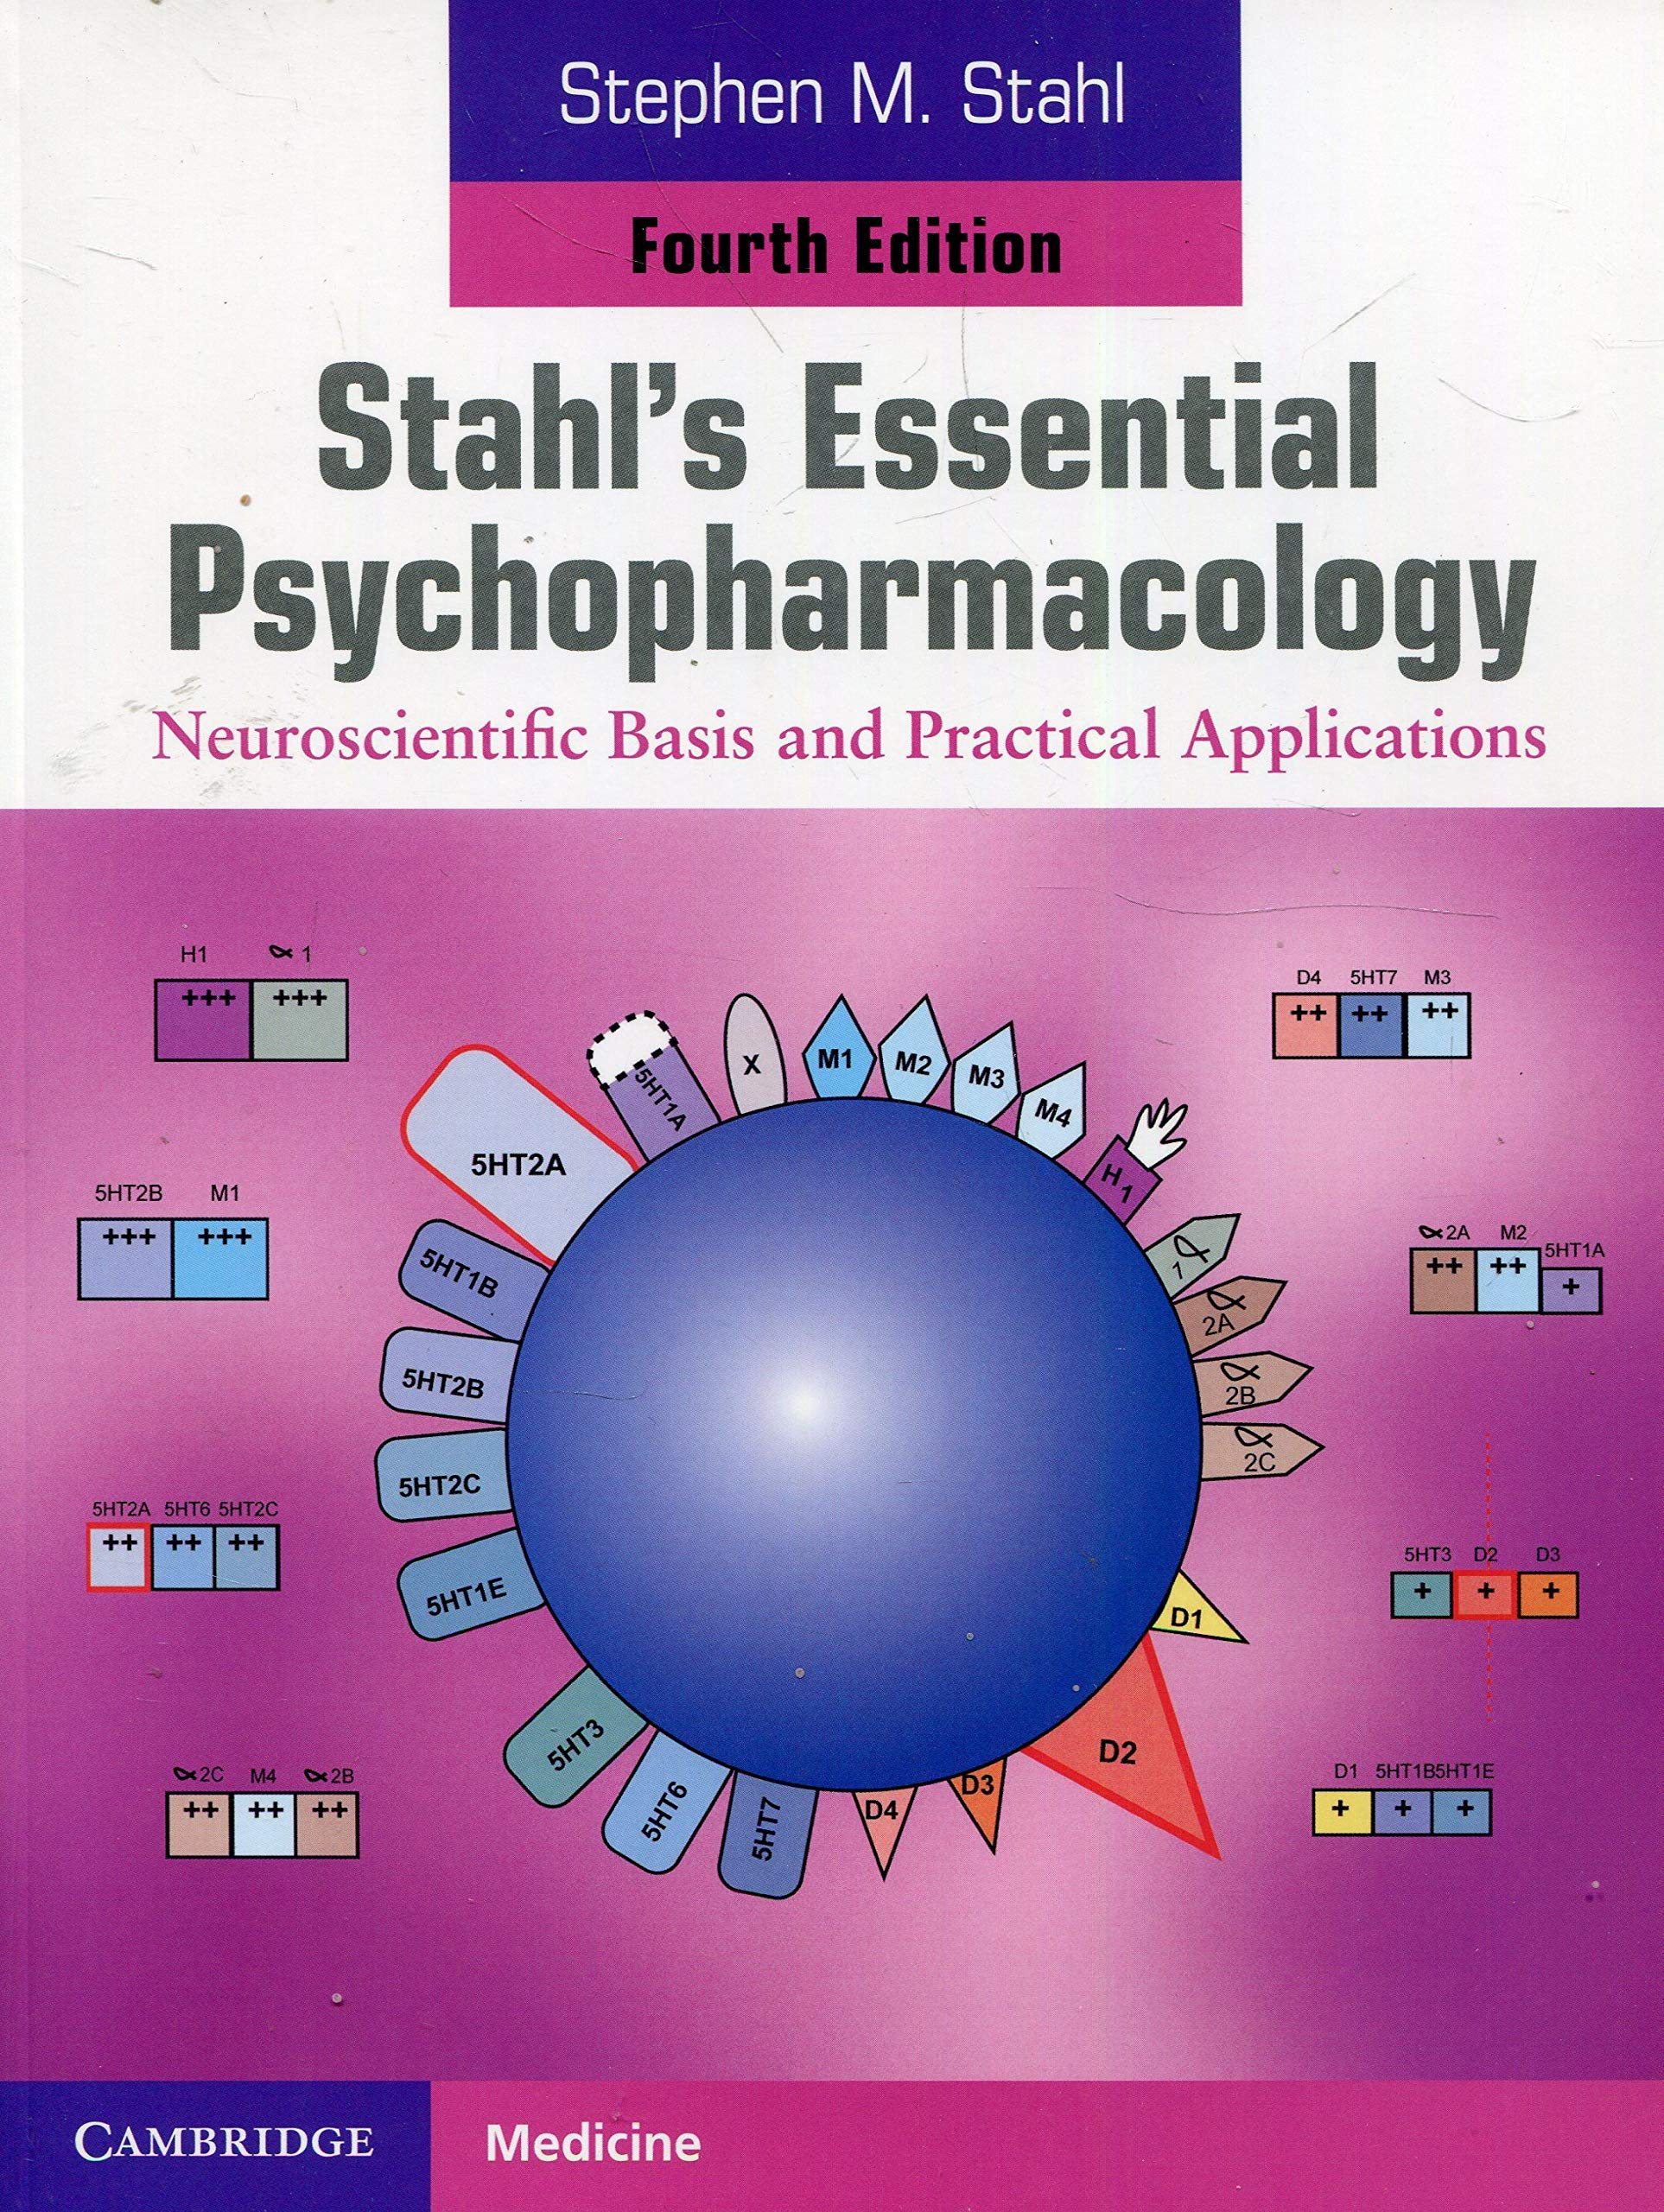 Stahl's Essential Psychopharmacology: Neuroscientific Basis and Practical Applications by Cambridge University Press